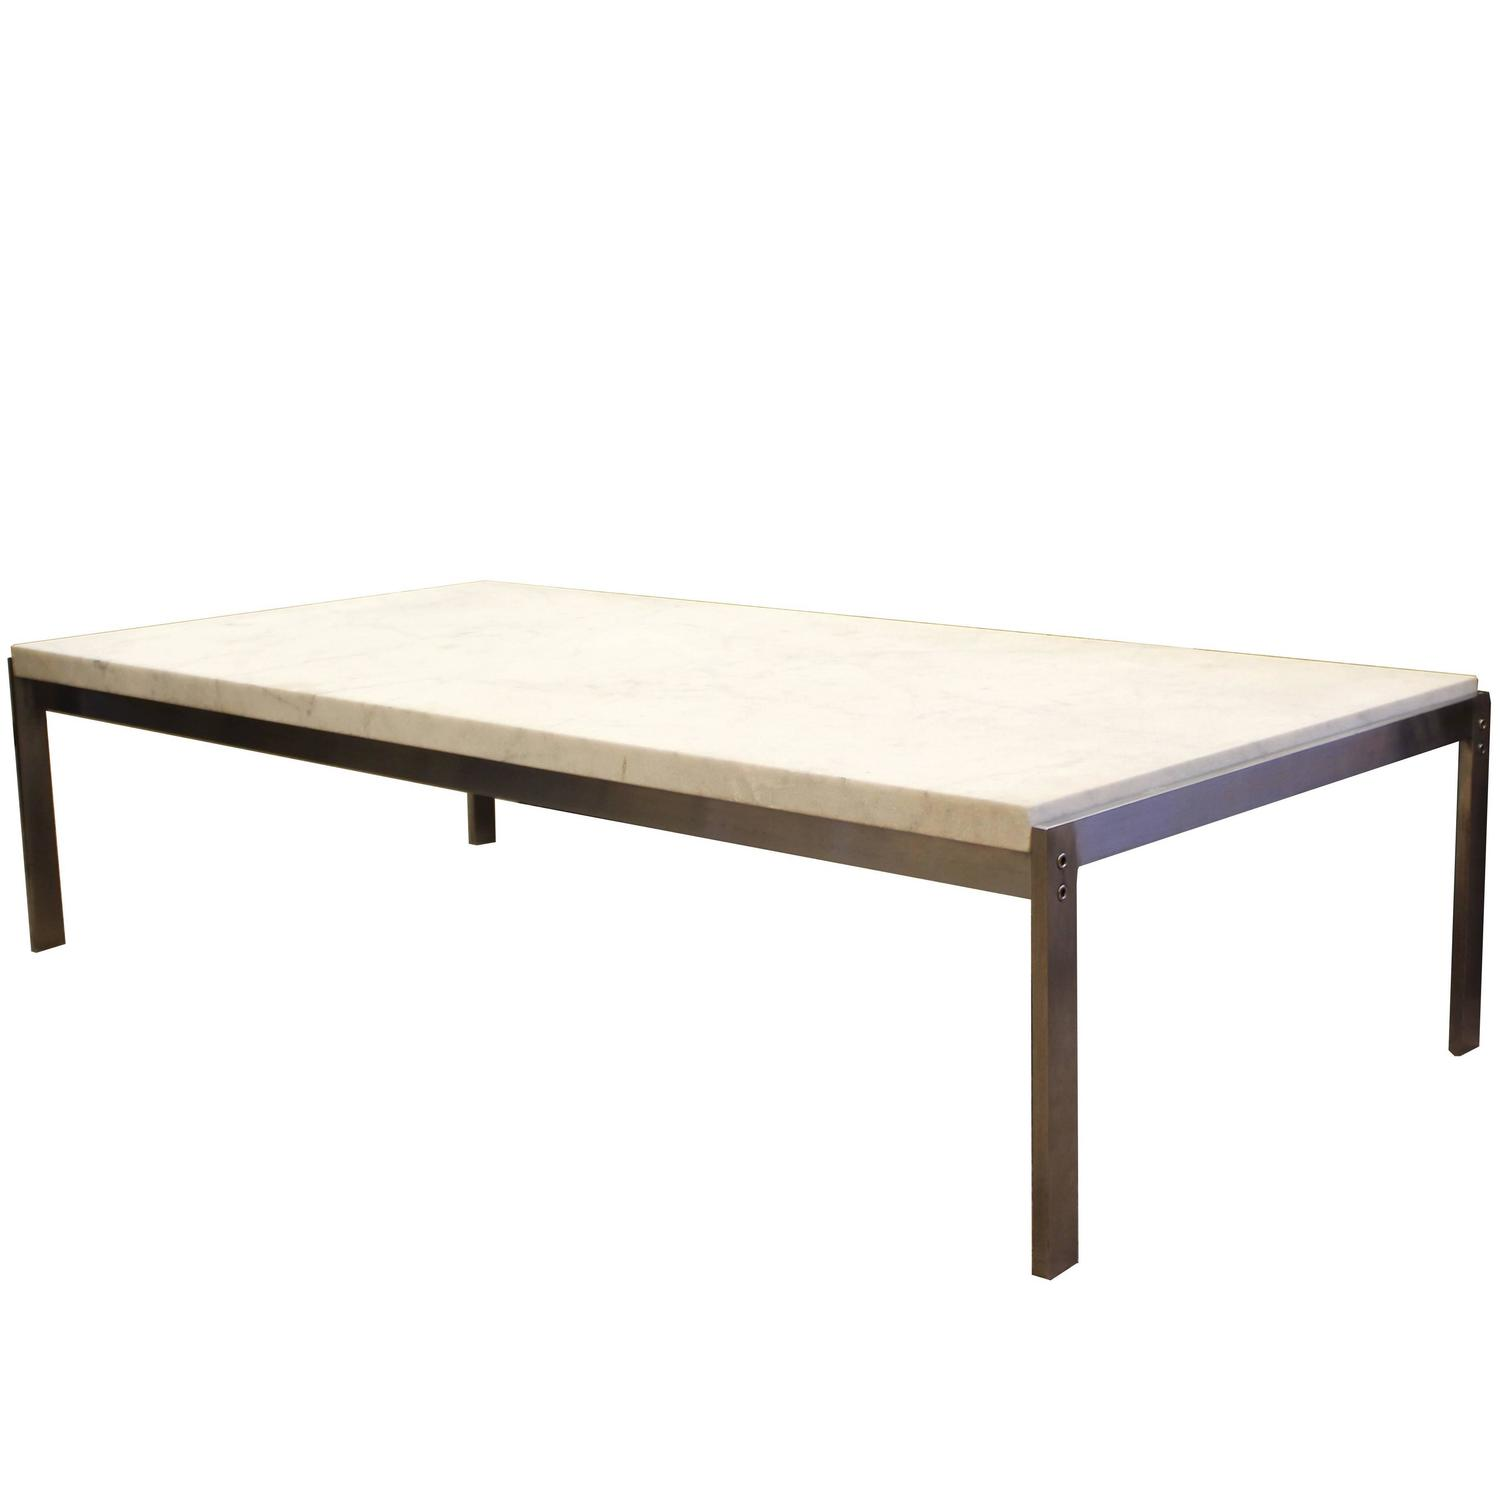 Poul Kjaerholm Pk65 Coffee Table White Flint Rolled Marble Signed